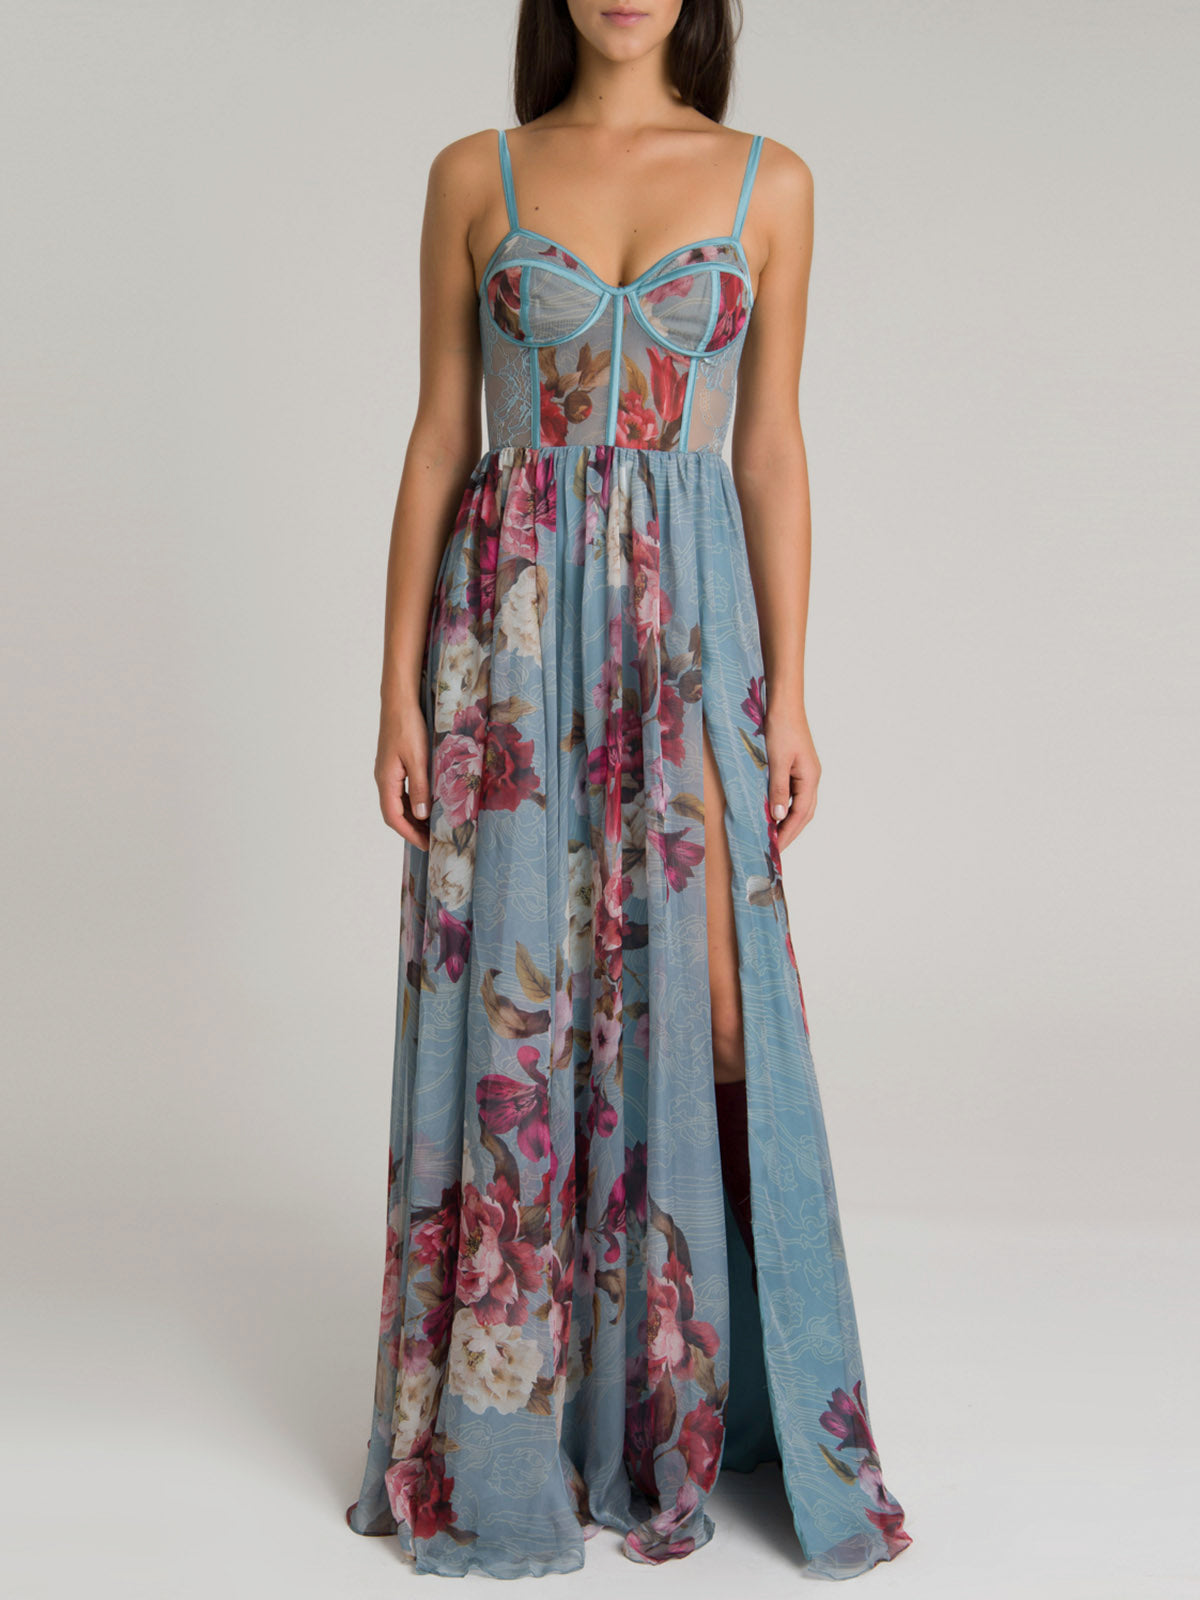 Peony Print Bustier Maxi Dress w/ Belt | Soft Blue